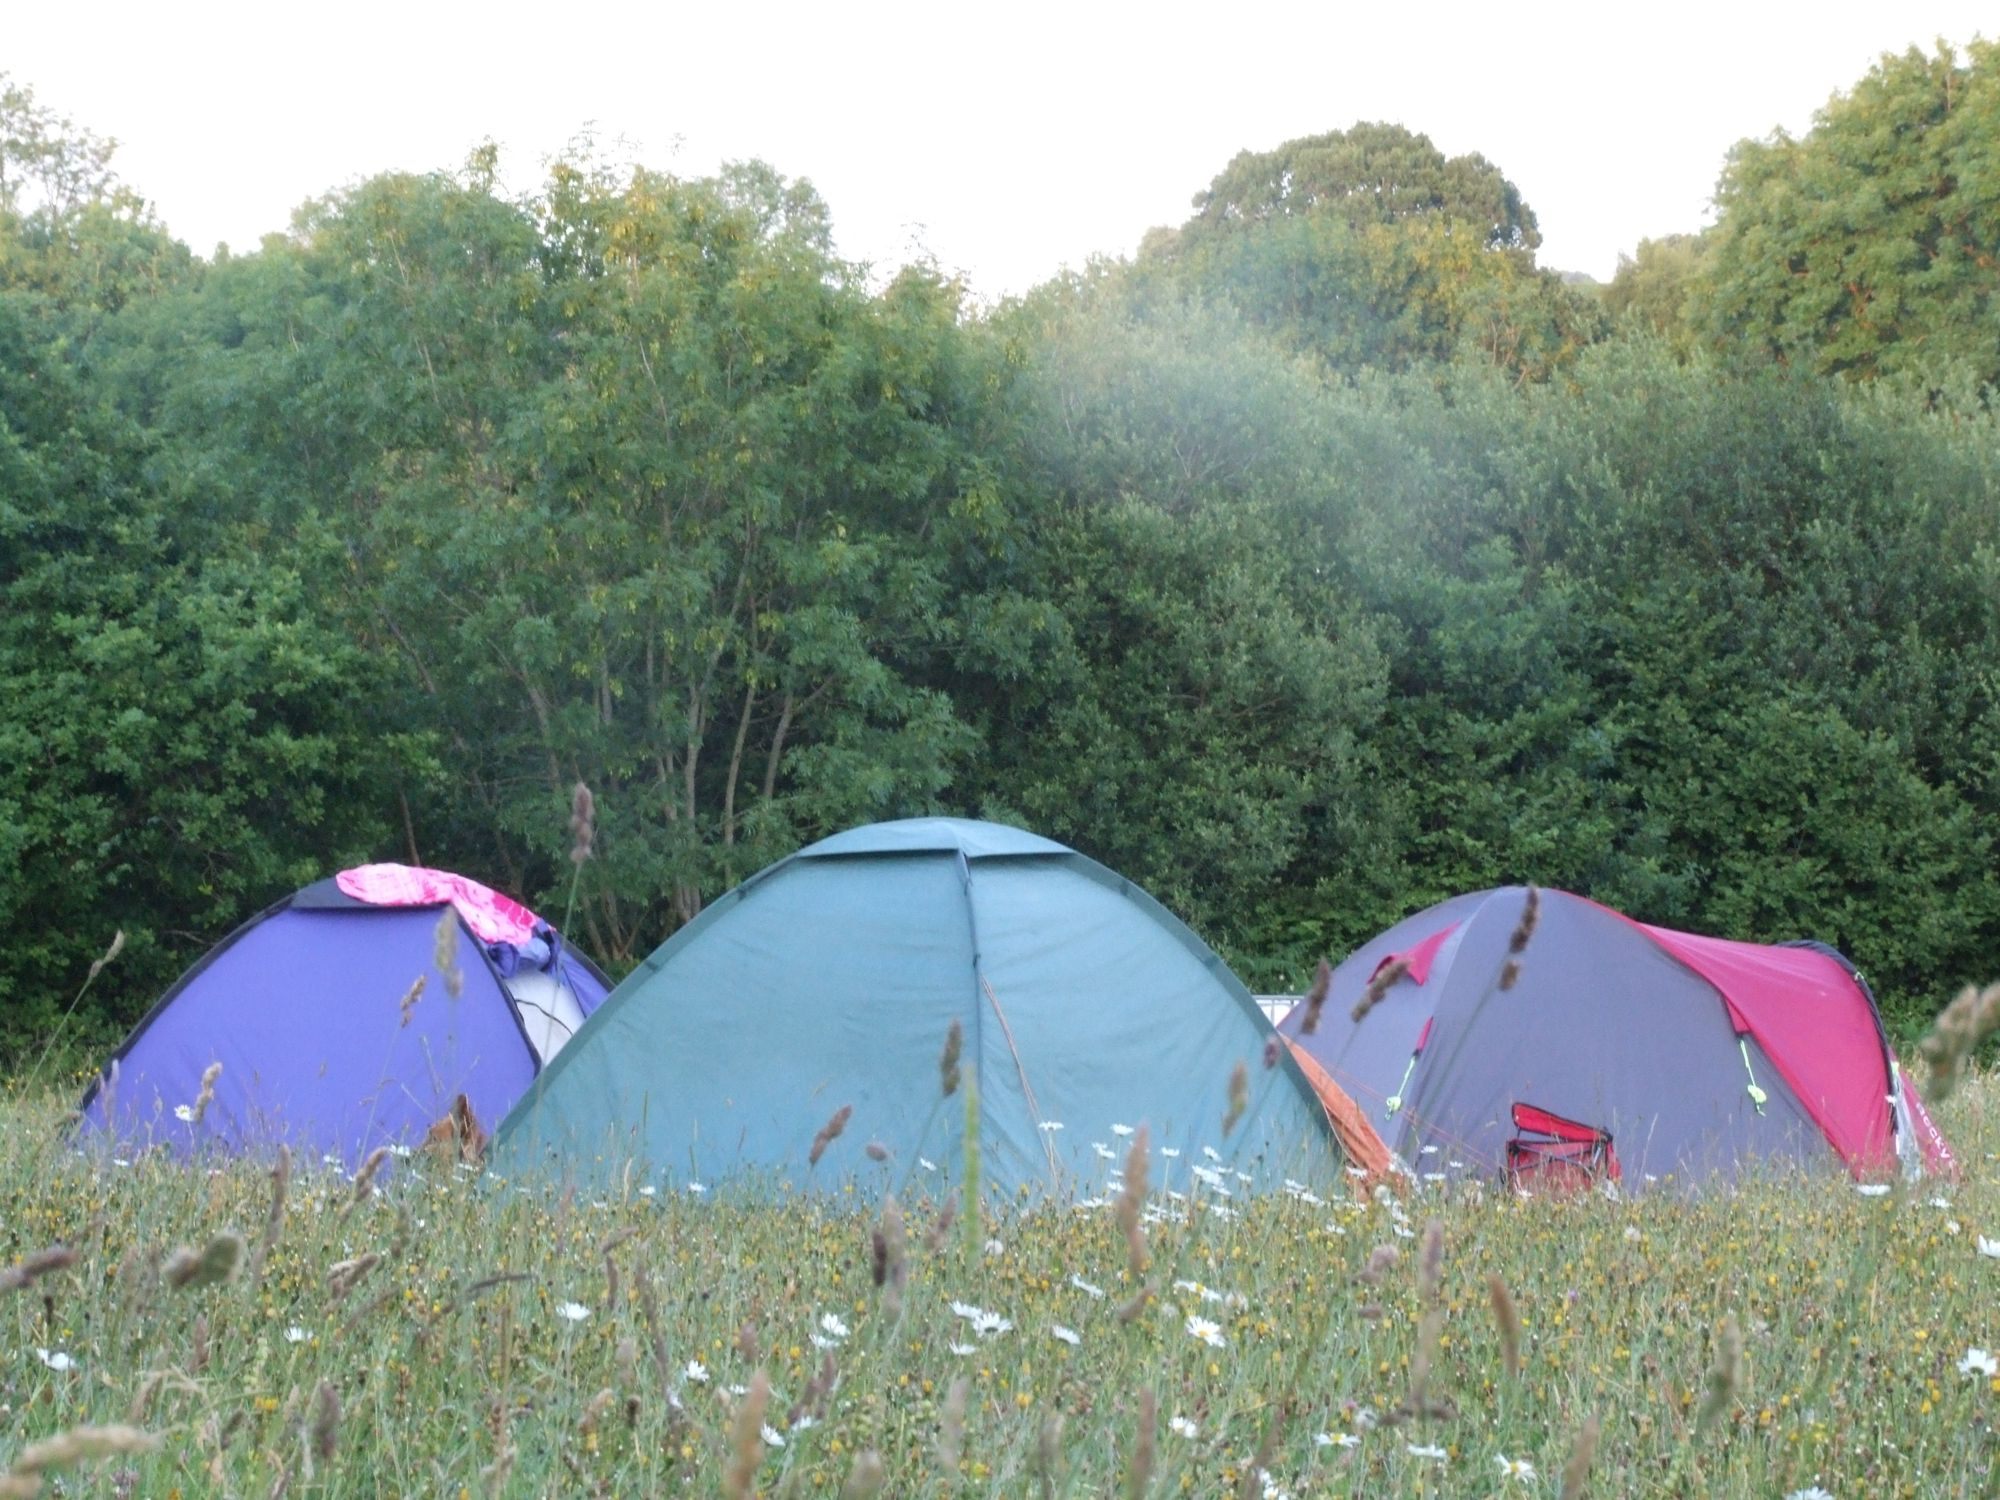 A proper rural campsite with streams, woodland and wildflower meadows to play in. Chose from the yurt and bell tents onsite or bring your own tent to pitch in the grassy meadow.